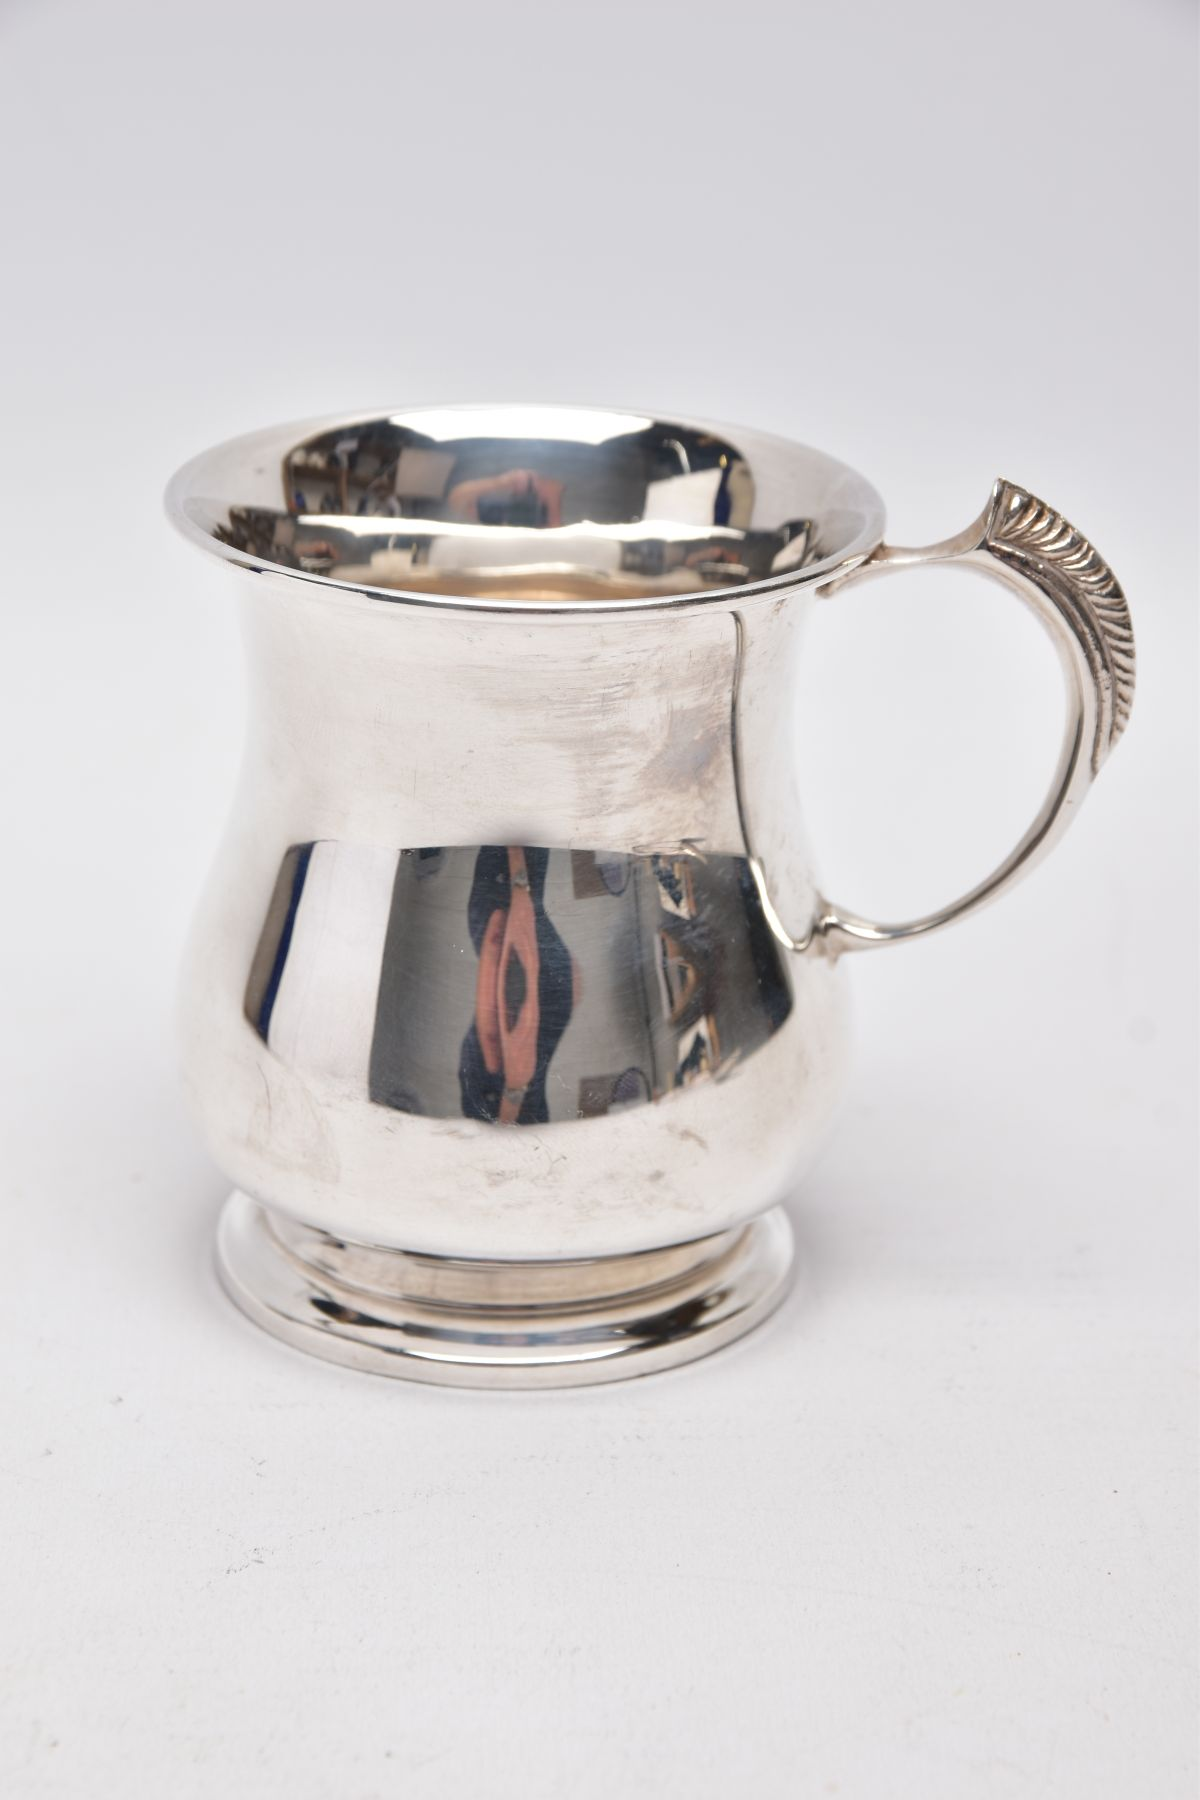 A SILVER TANKARD, bell shaped body with a feather detailed handle, hallmarked 'Roberts & Dore' - Image 2 of 5